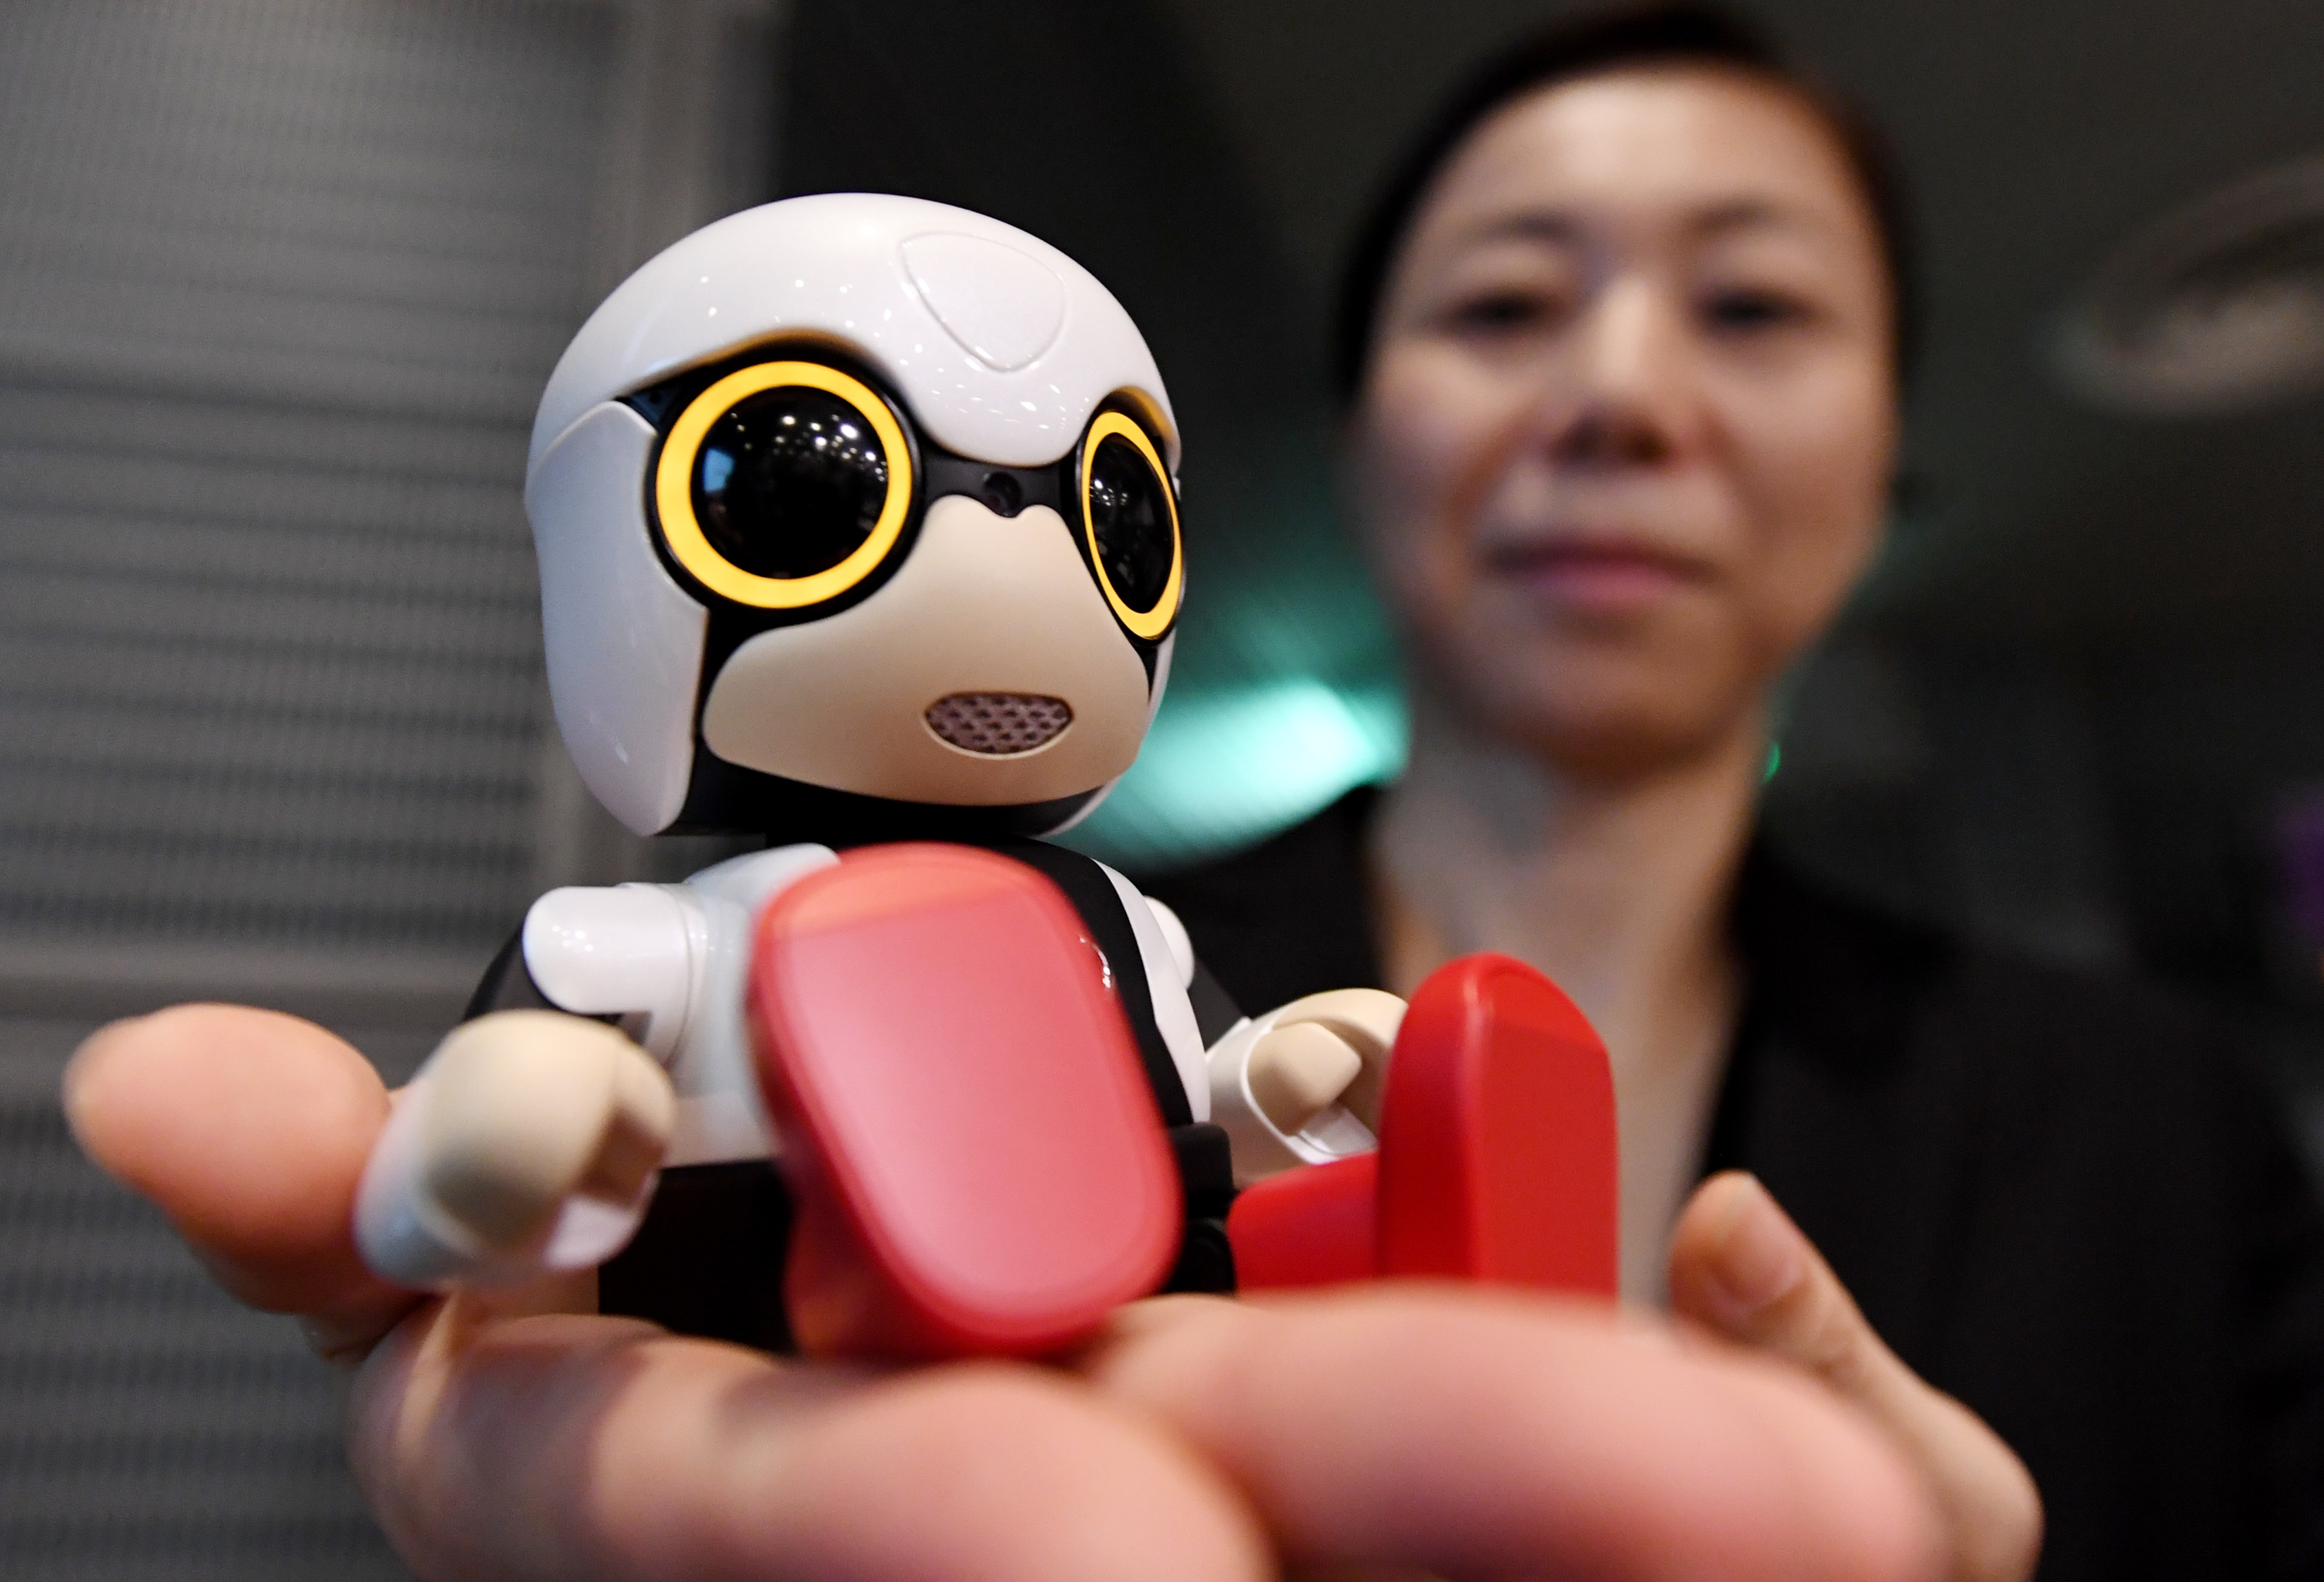 Toyota is now selling adorable toy robots in case you need one